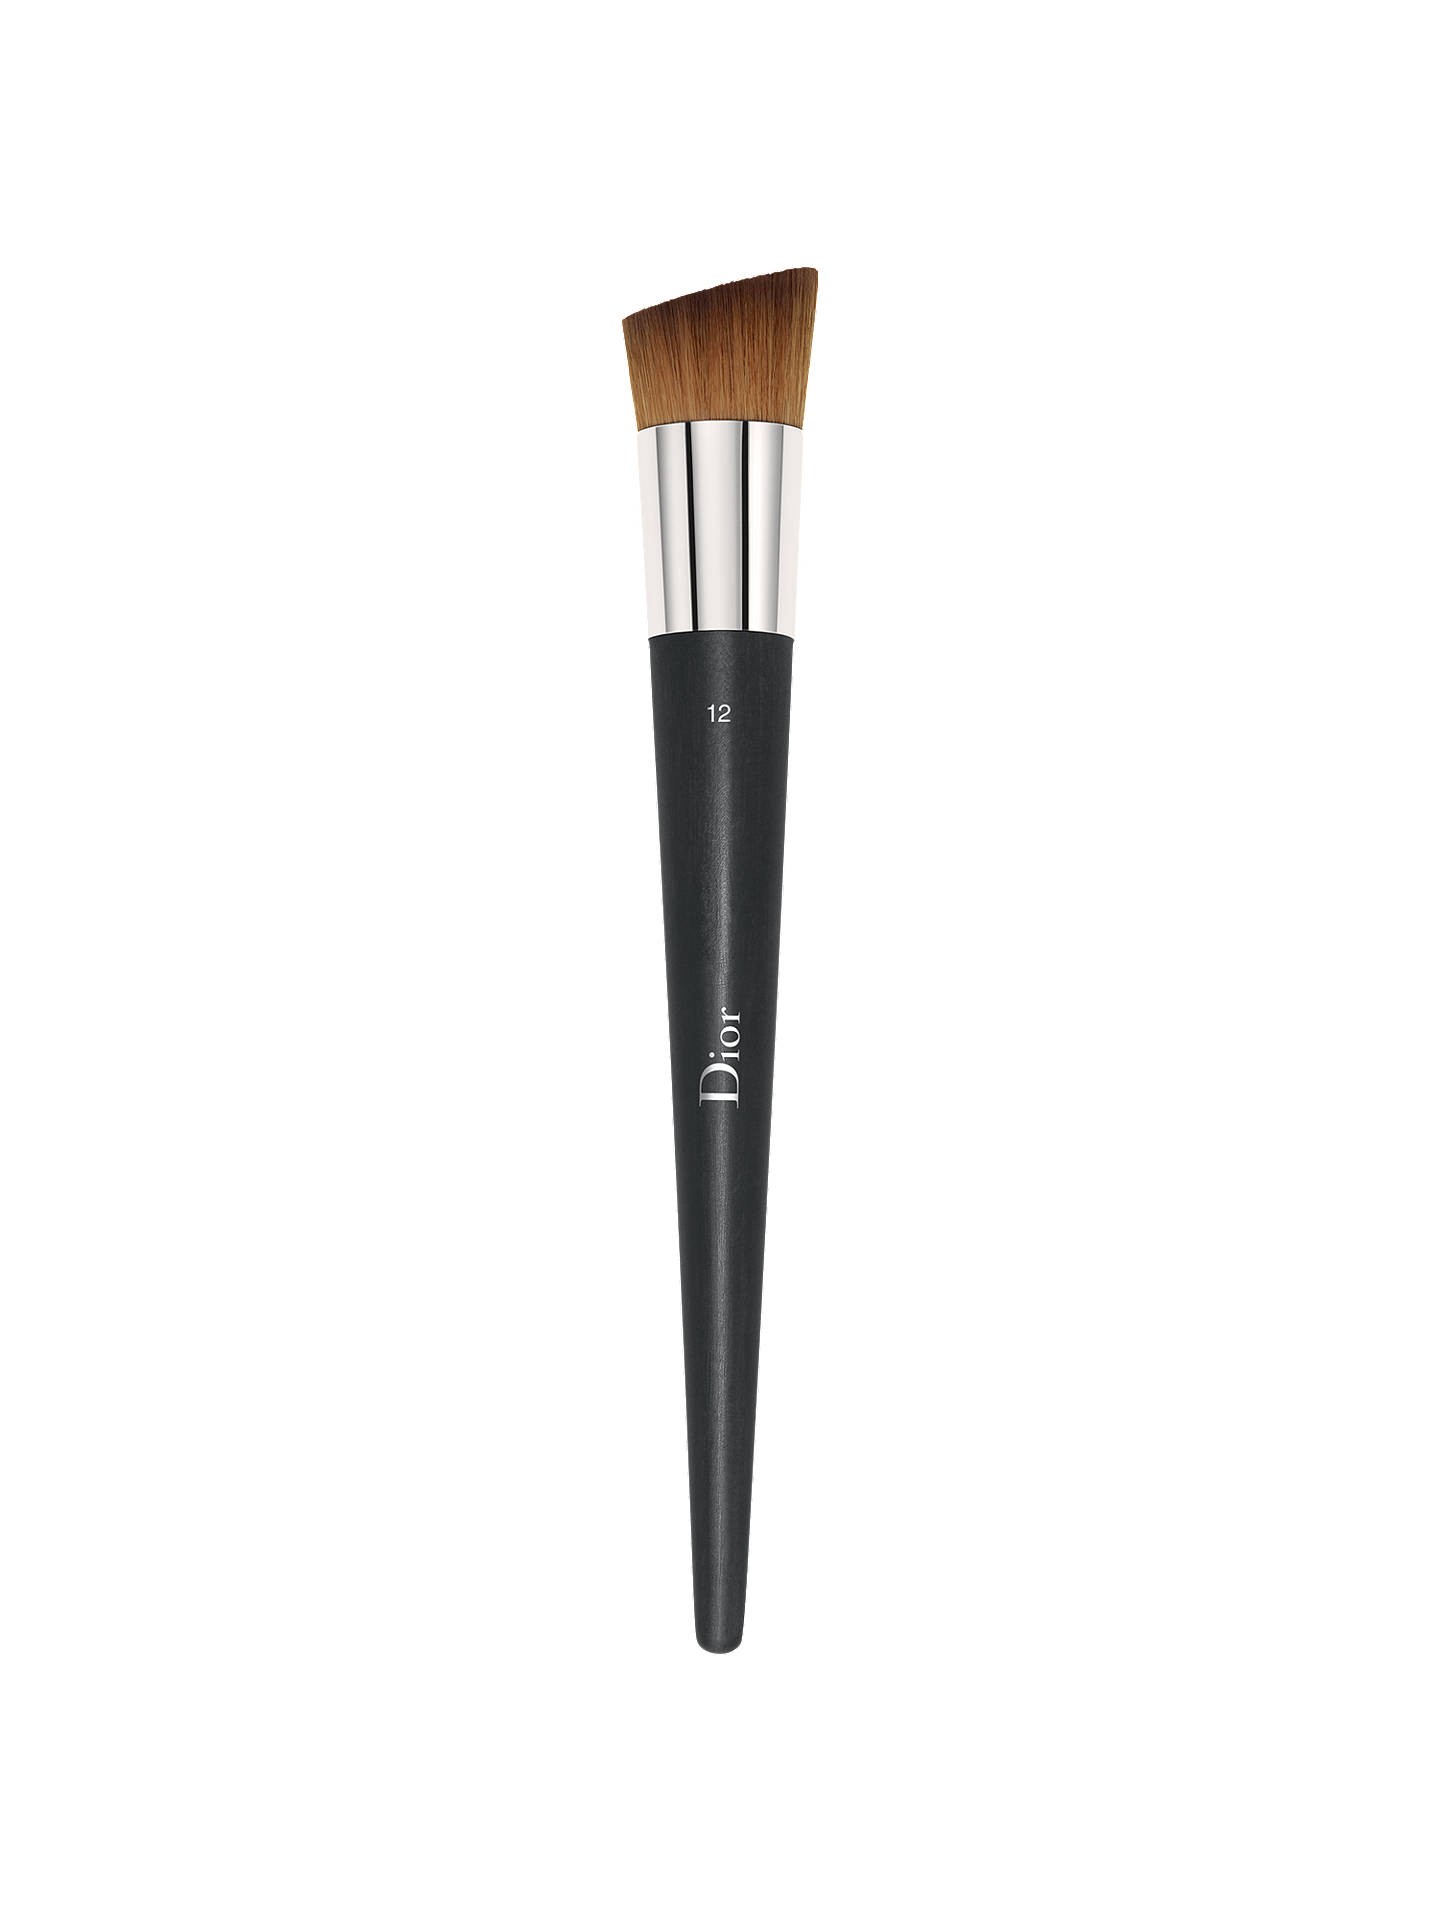 a88360742a Dior Professional Finish Fluid Foundation Brush - High Coverage at ...